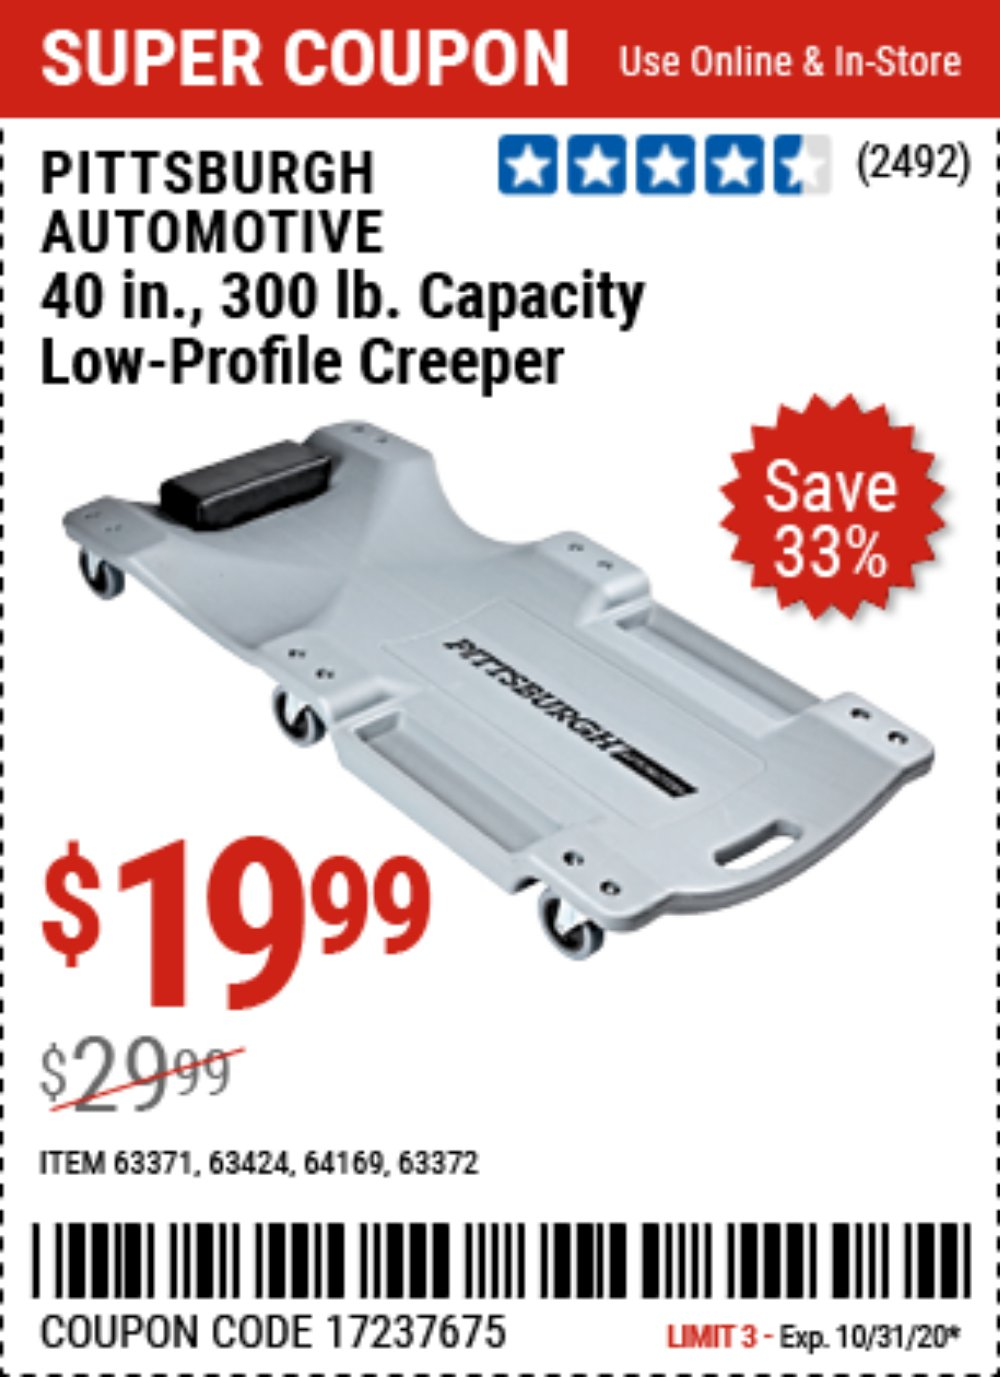 Harbor Freight Coupon, HF Coupons - Low-profile Creeper